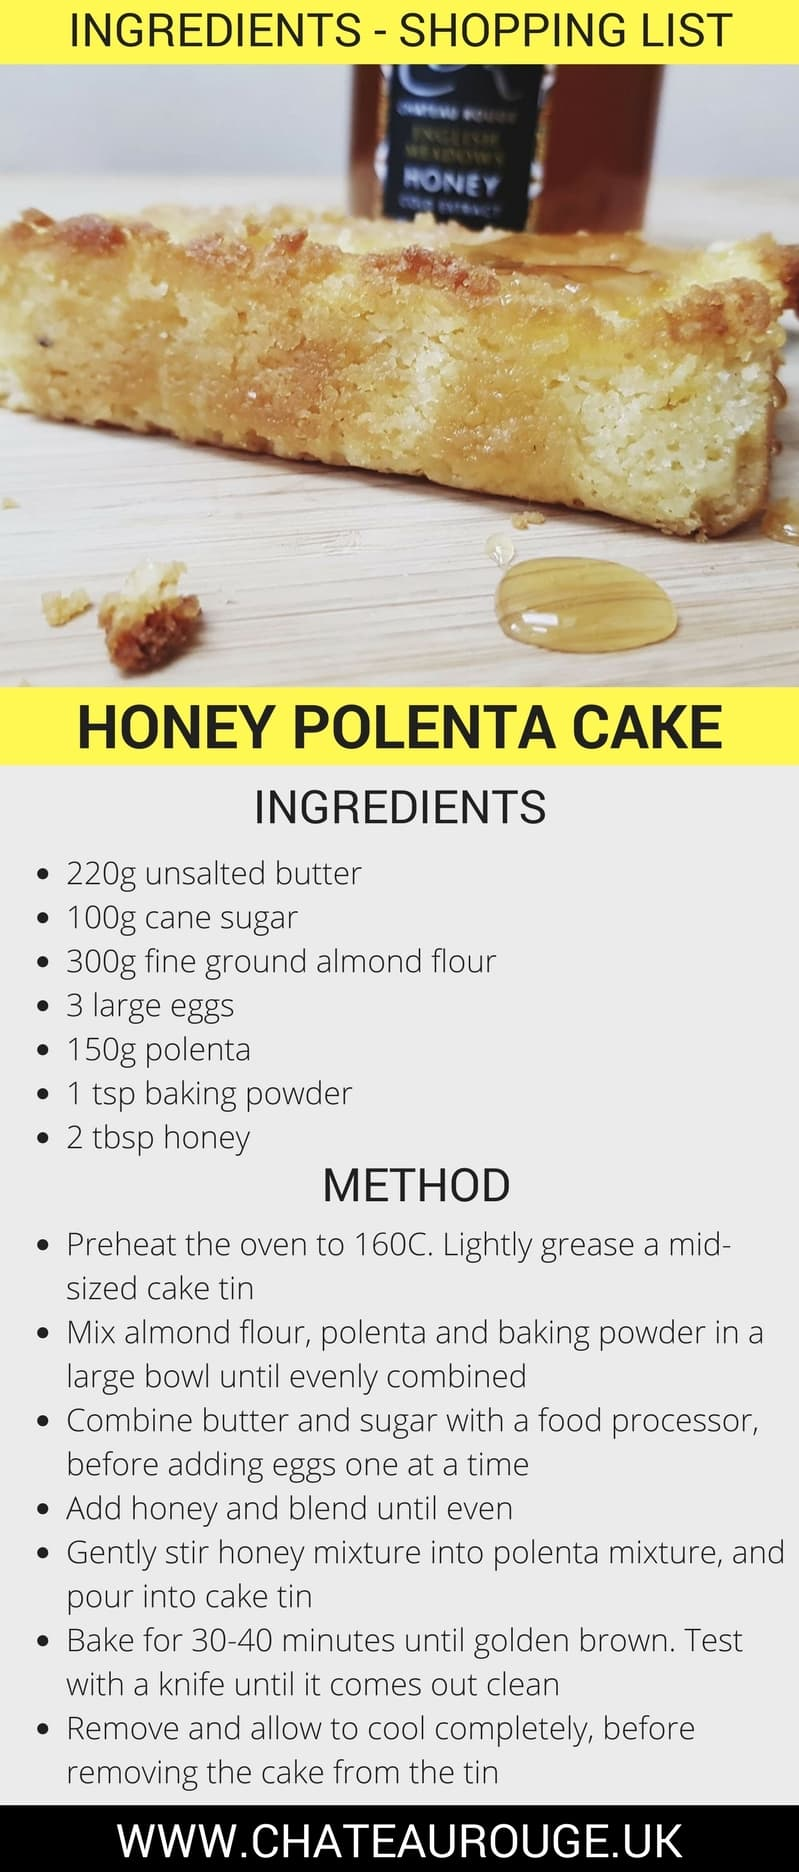 Chateau Rouge Fine Foods UK_The perfect teatime treat- Honey Polenta Cake 100% Gluten-free_RECIPE DOWNLOAD